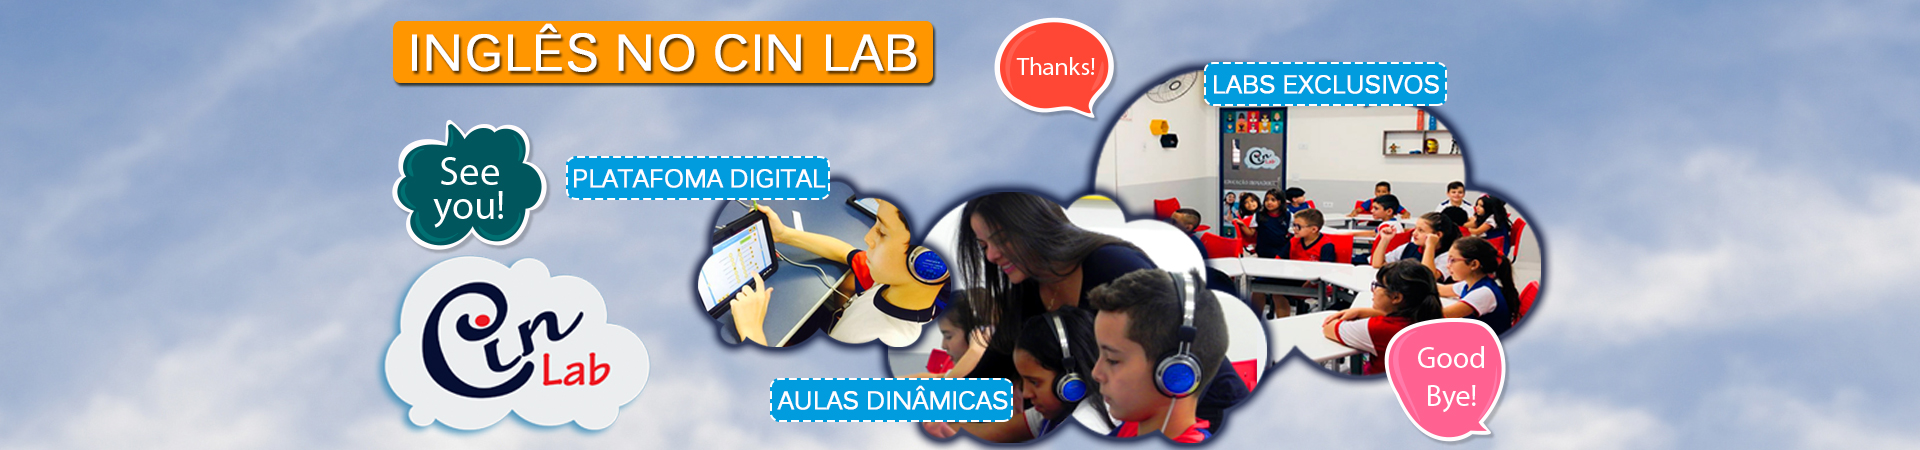 slide-ingles-cinlab-full